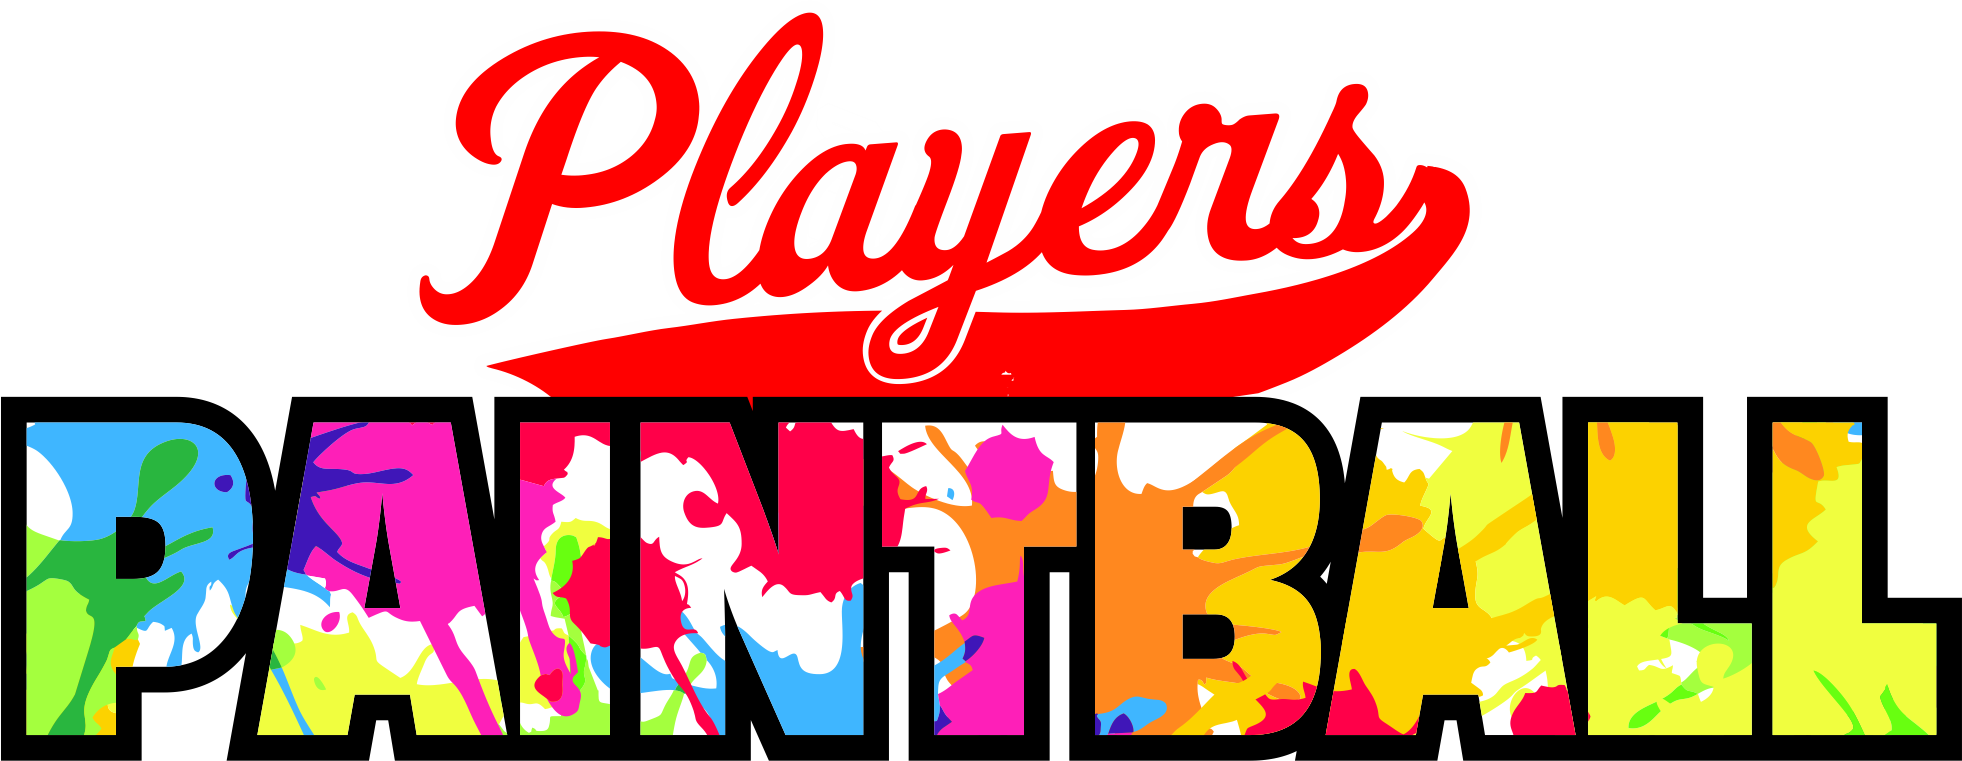 Home players. Paintball clipart booger